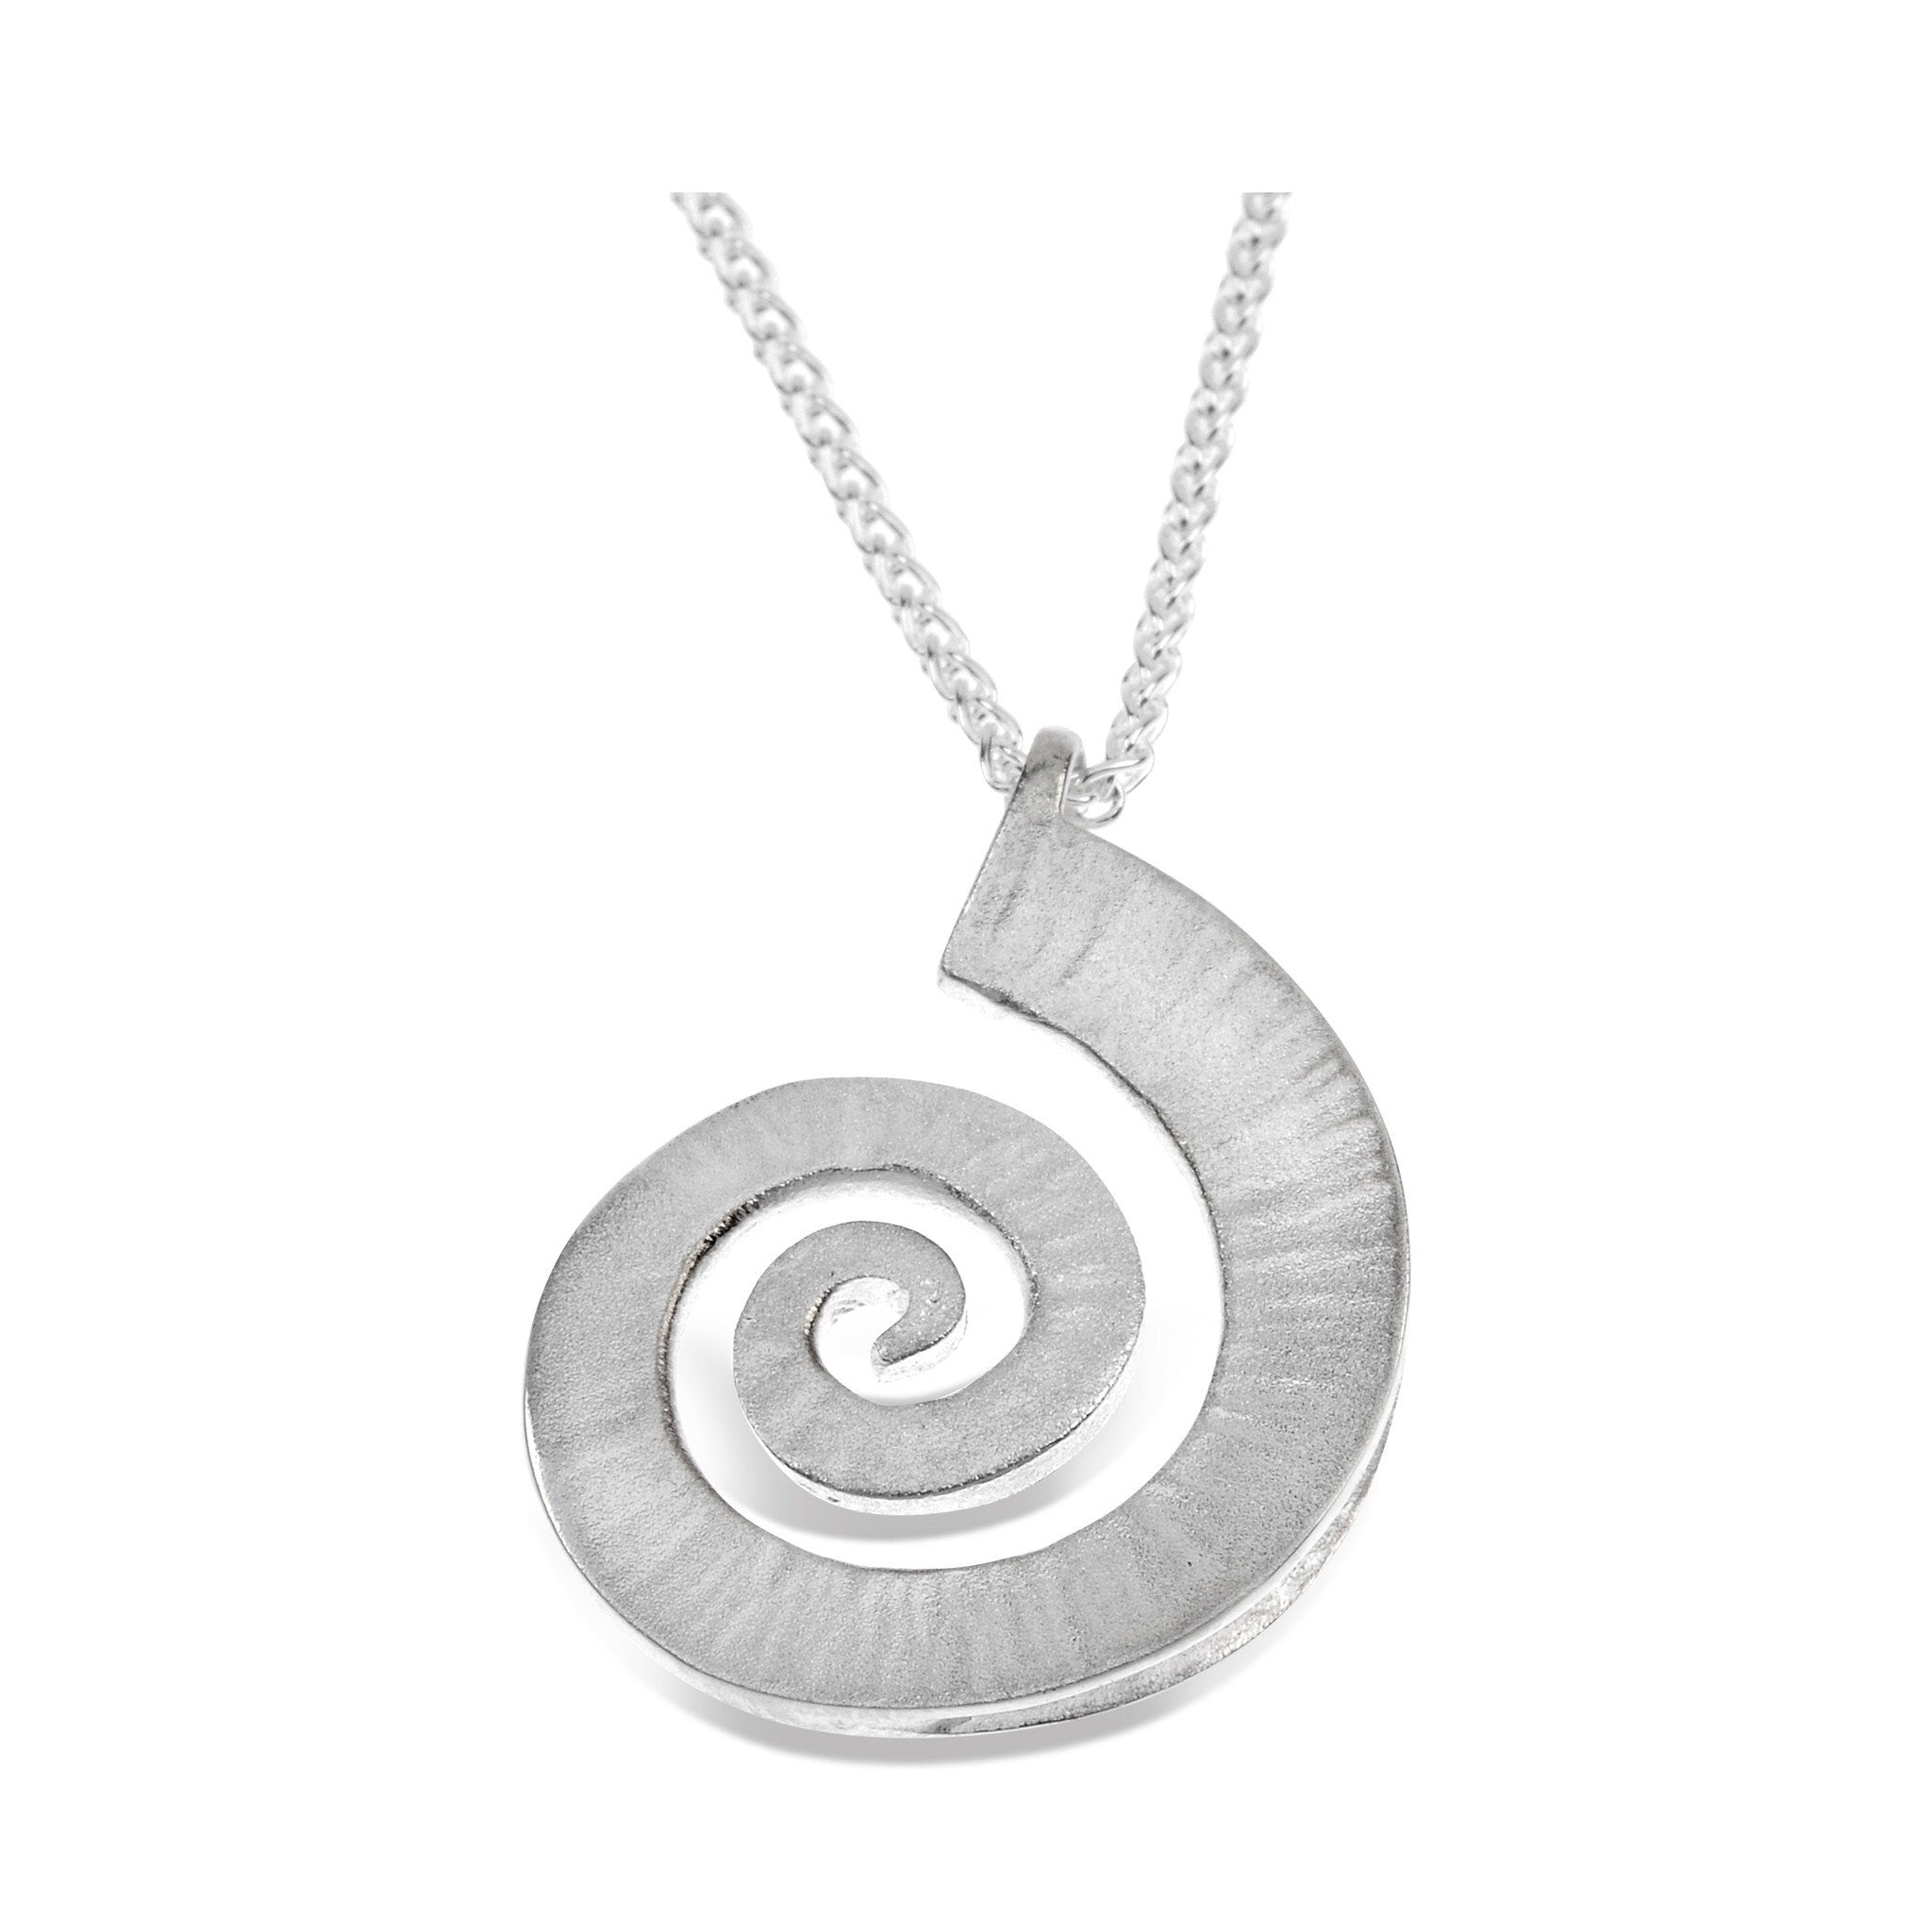 tibetan spir new turquoise pendant products spiral moon with